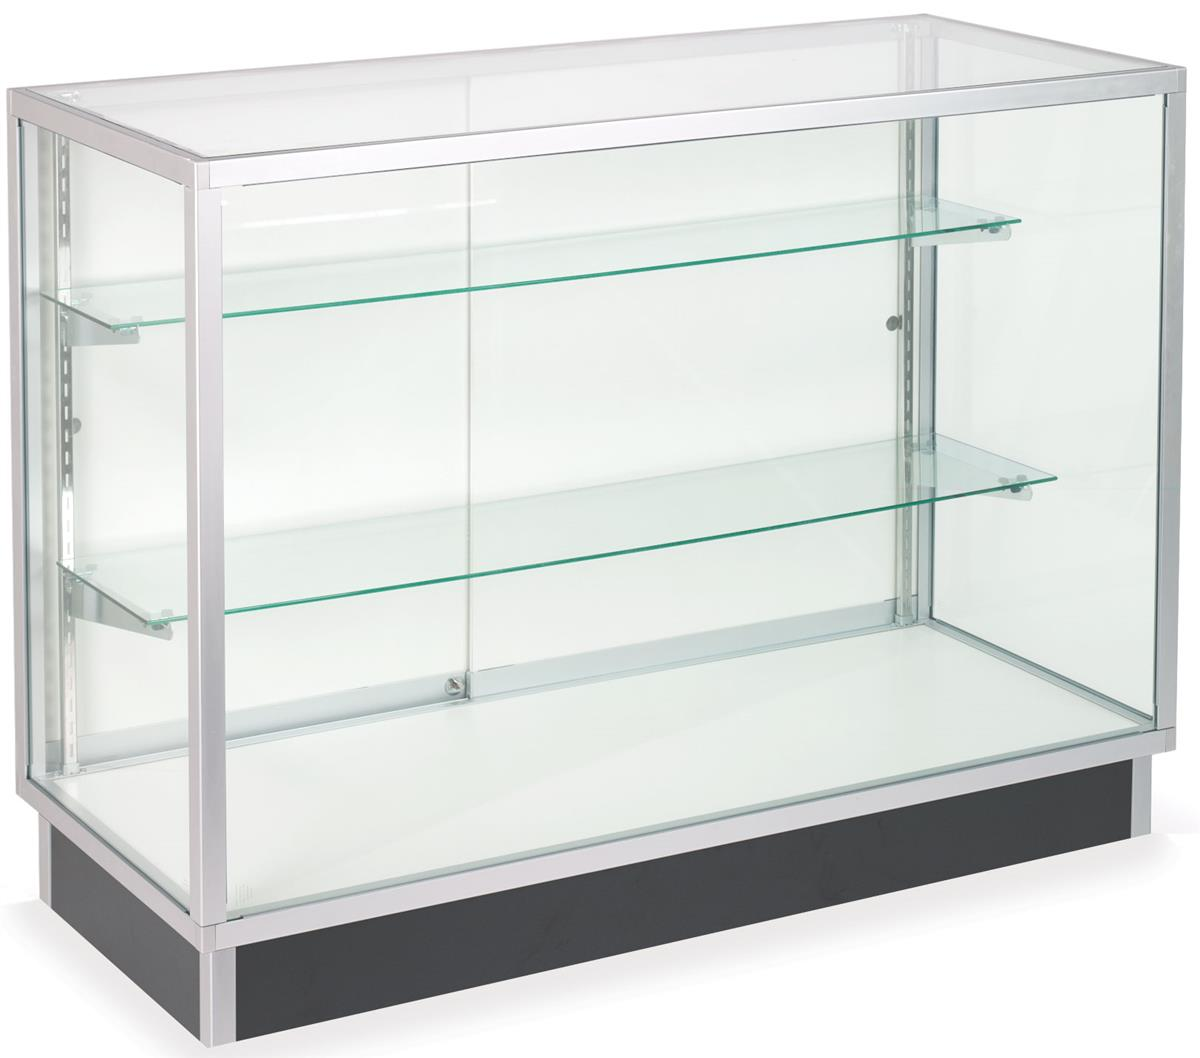 Cisgcase glass case